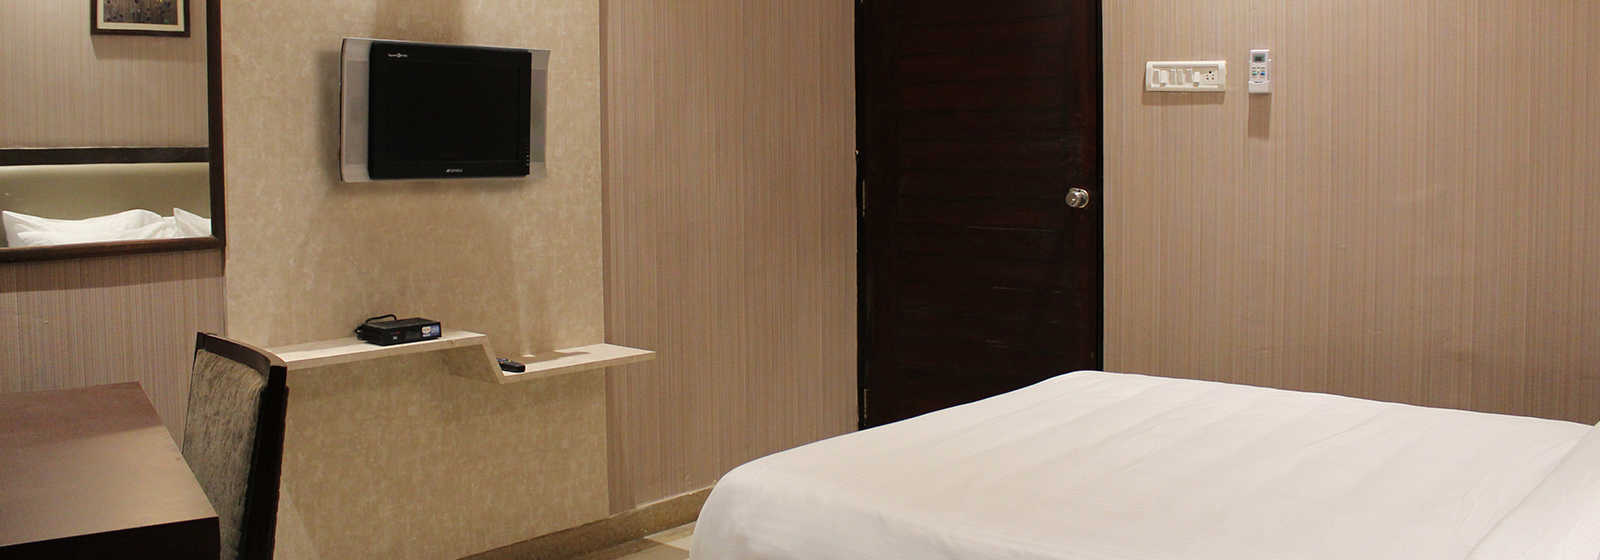 Super Deluxe room equipped with TV and study table at The Byke Signature, a business hotel in Bangalore.